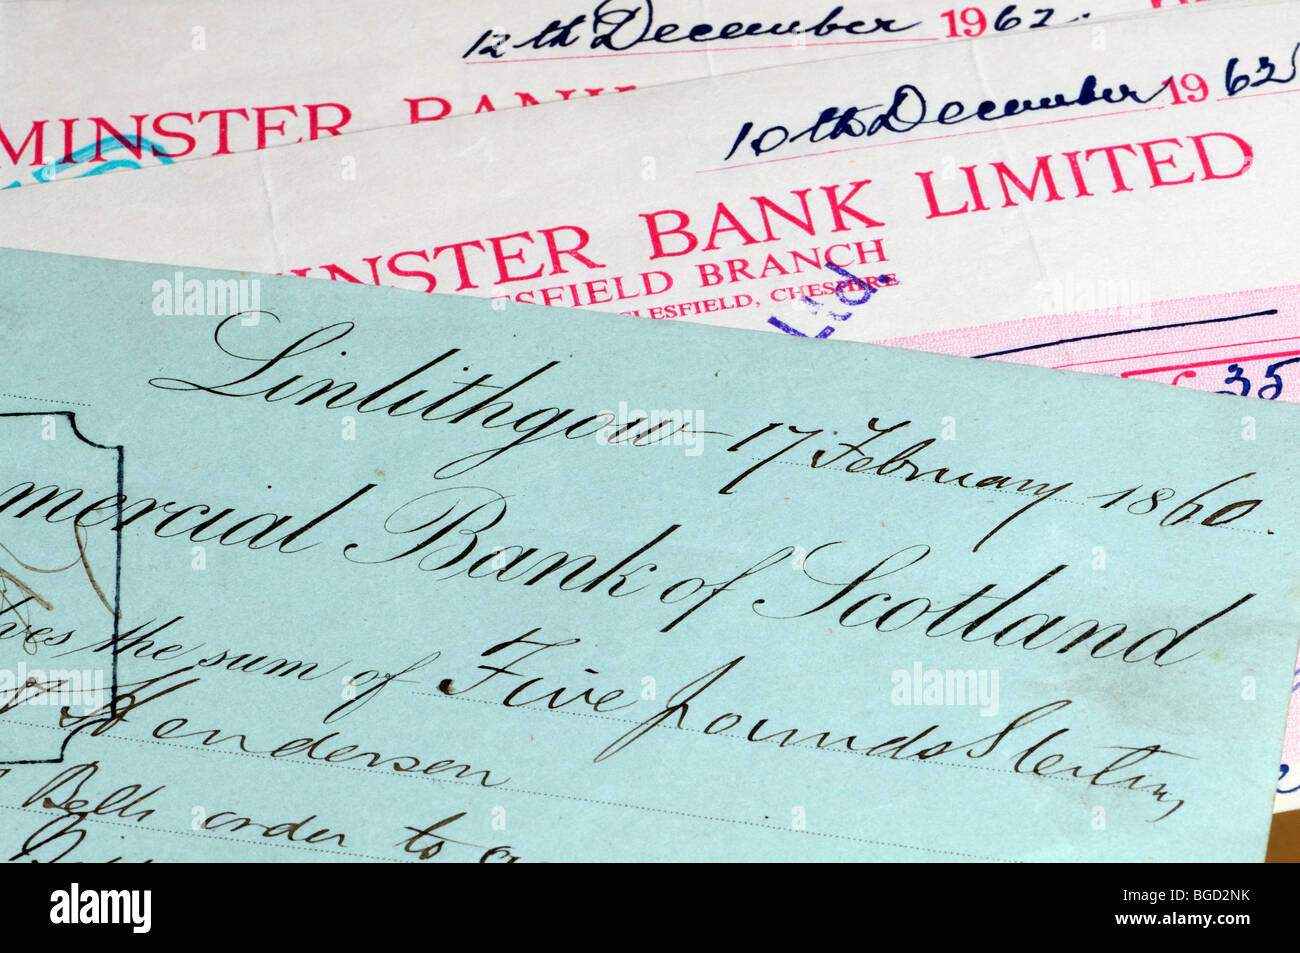 Cheques from 1962 and 1860 - Stock Image